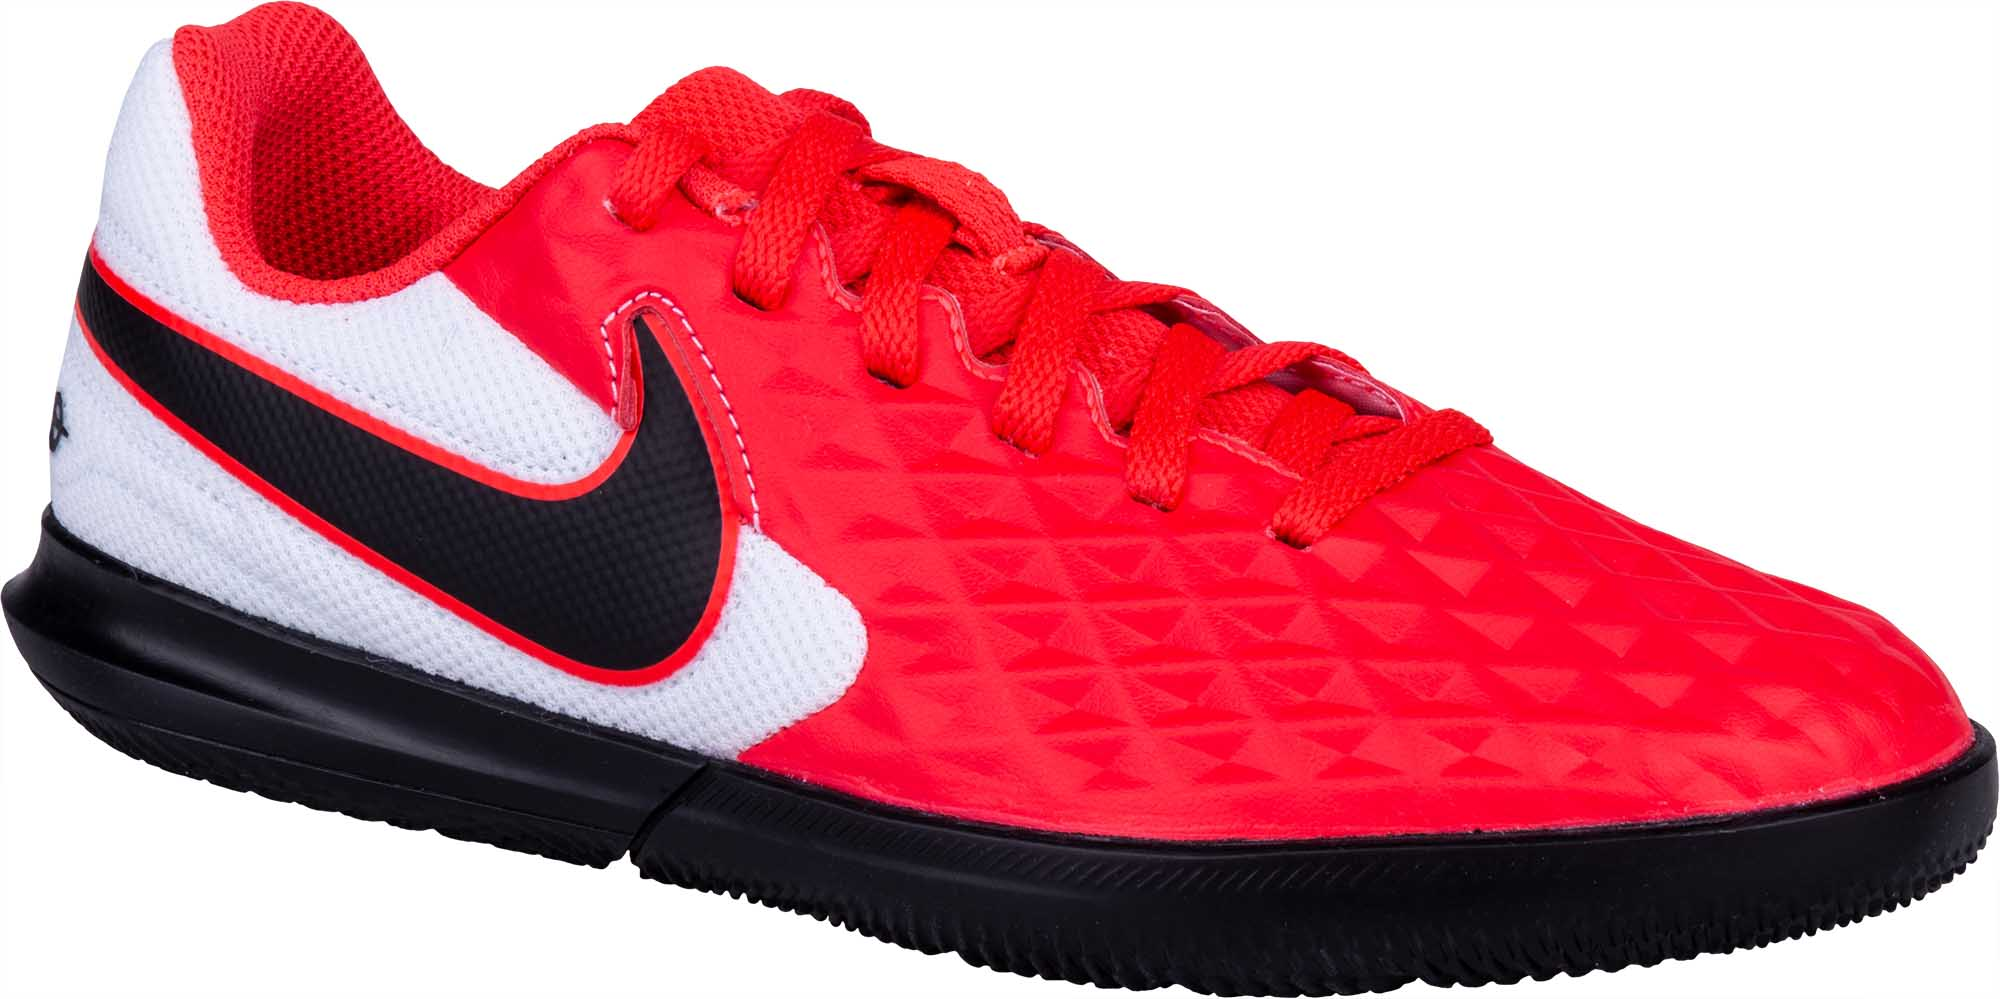 enemigo Subvención Dardos  Nike JR TIEMPO LEGEND 8 CLUB IC | sportisimo.com